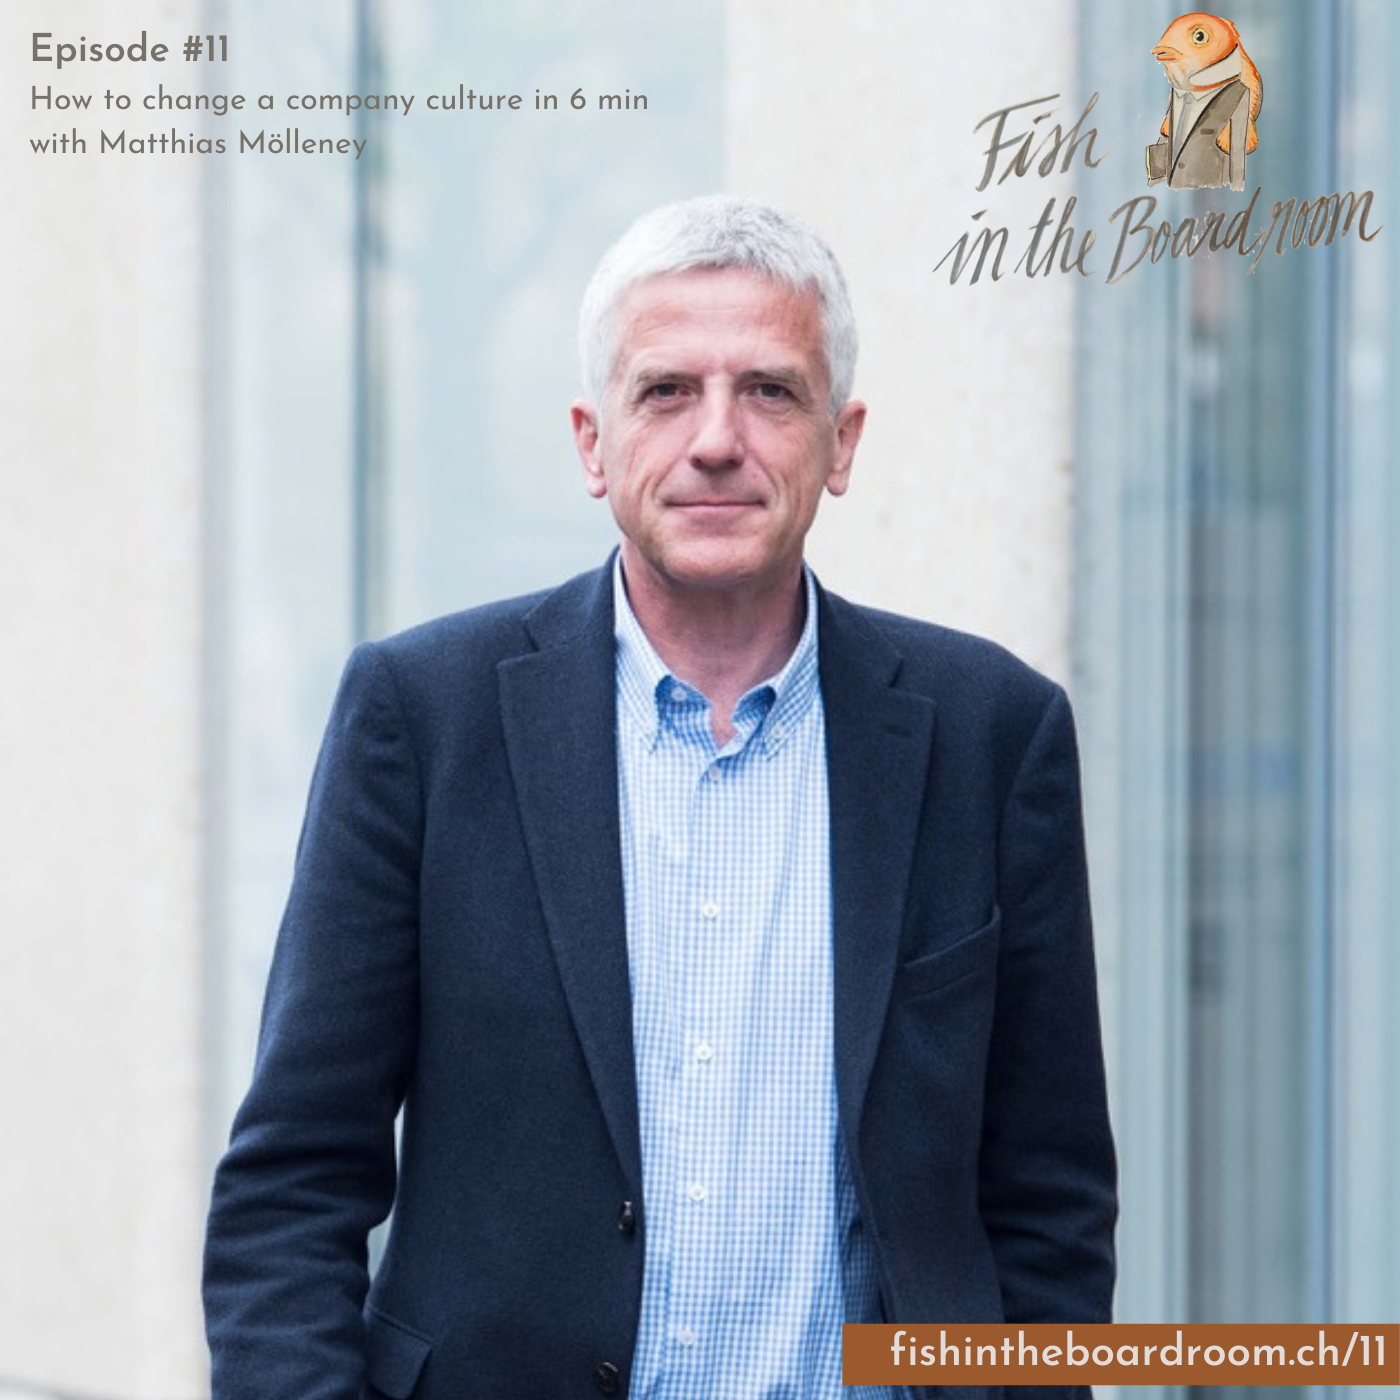 Fish in the Boardroom podcast Episode #11 How to change company culture in 6 min Interview with Matthias Mölleney